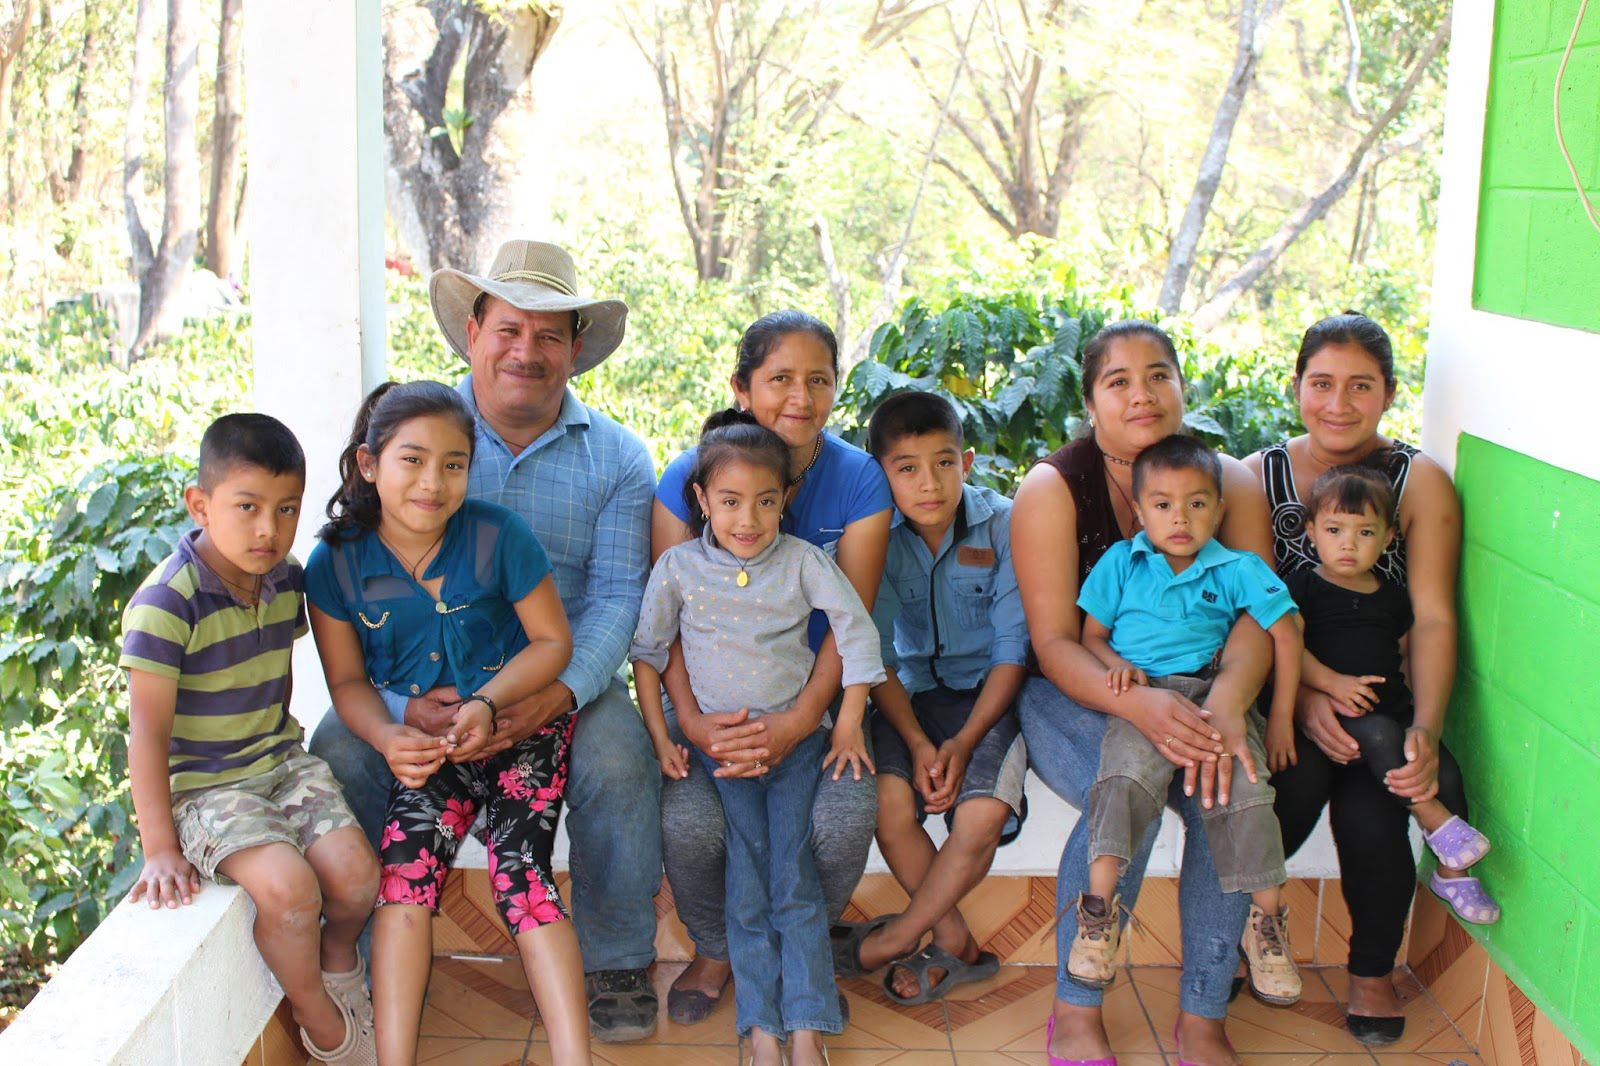 Juanita, Saul and two daughters and some of their grandchildren.